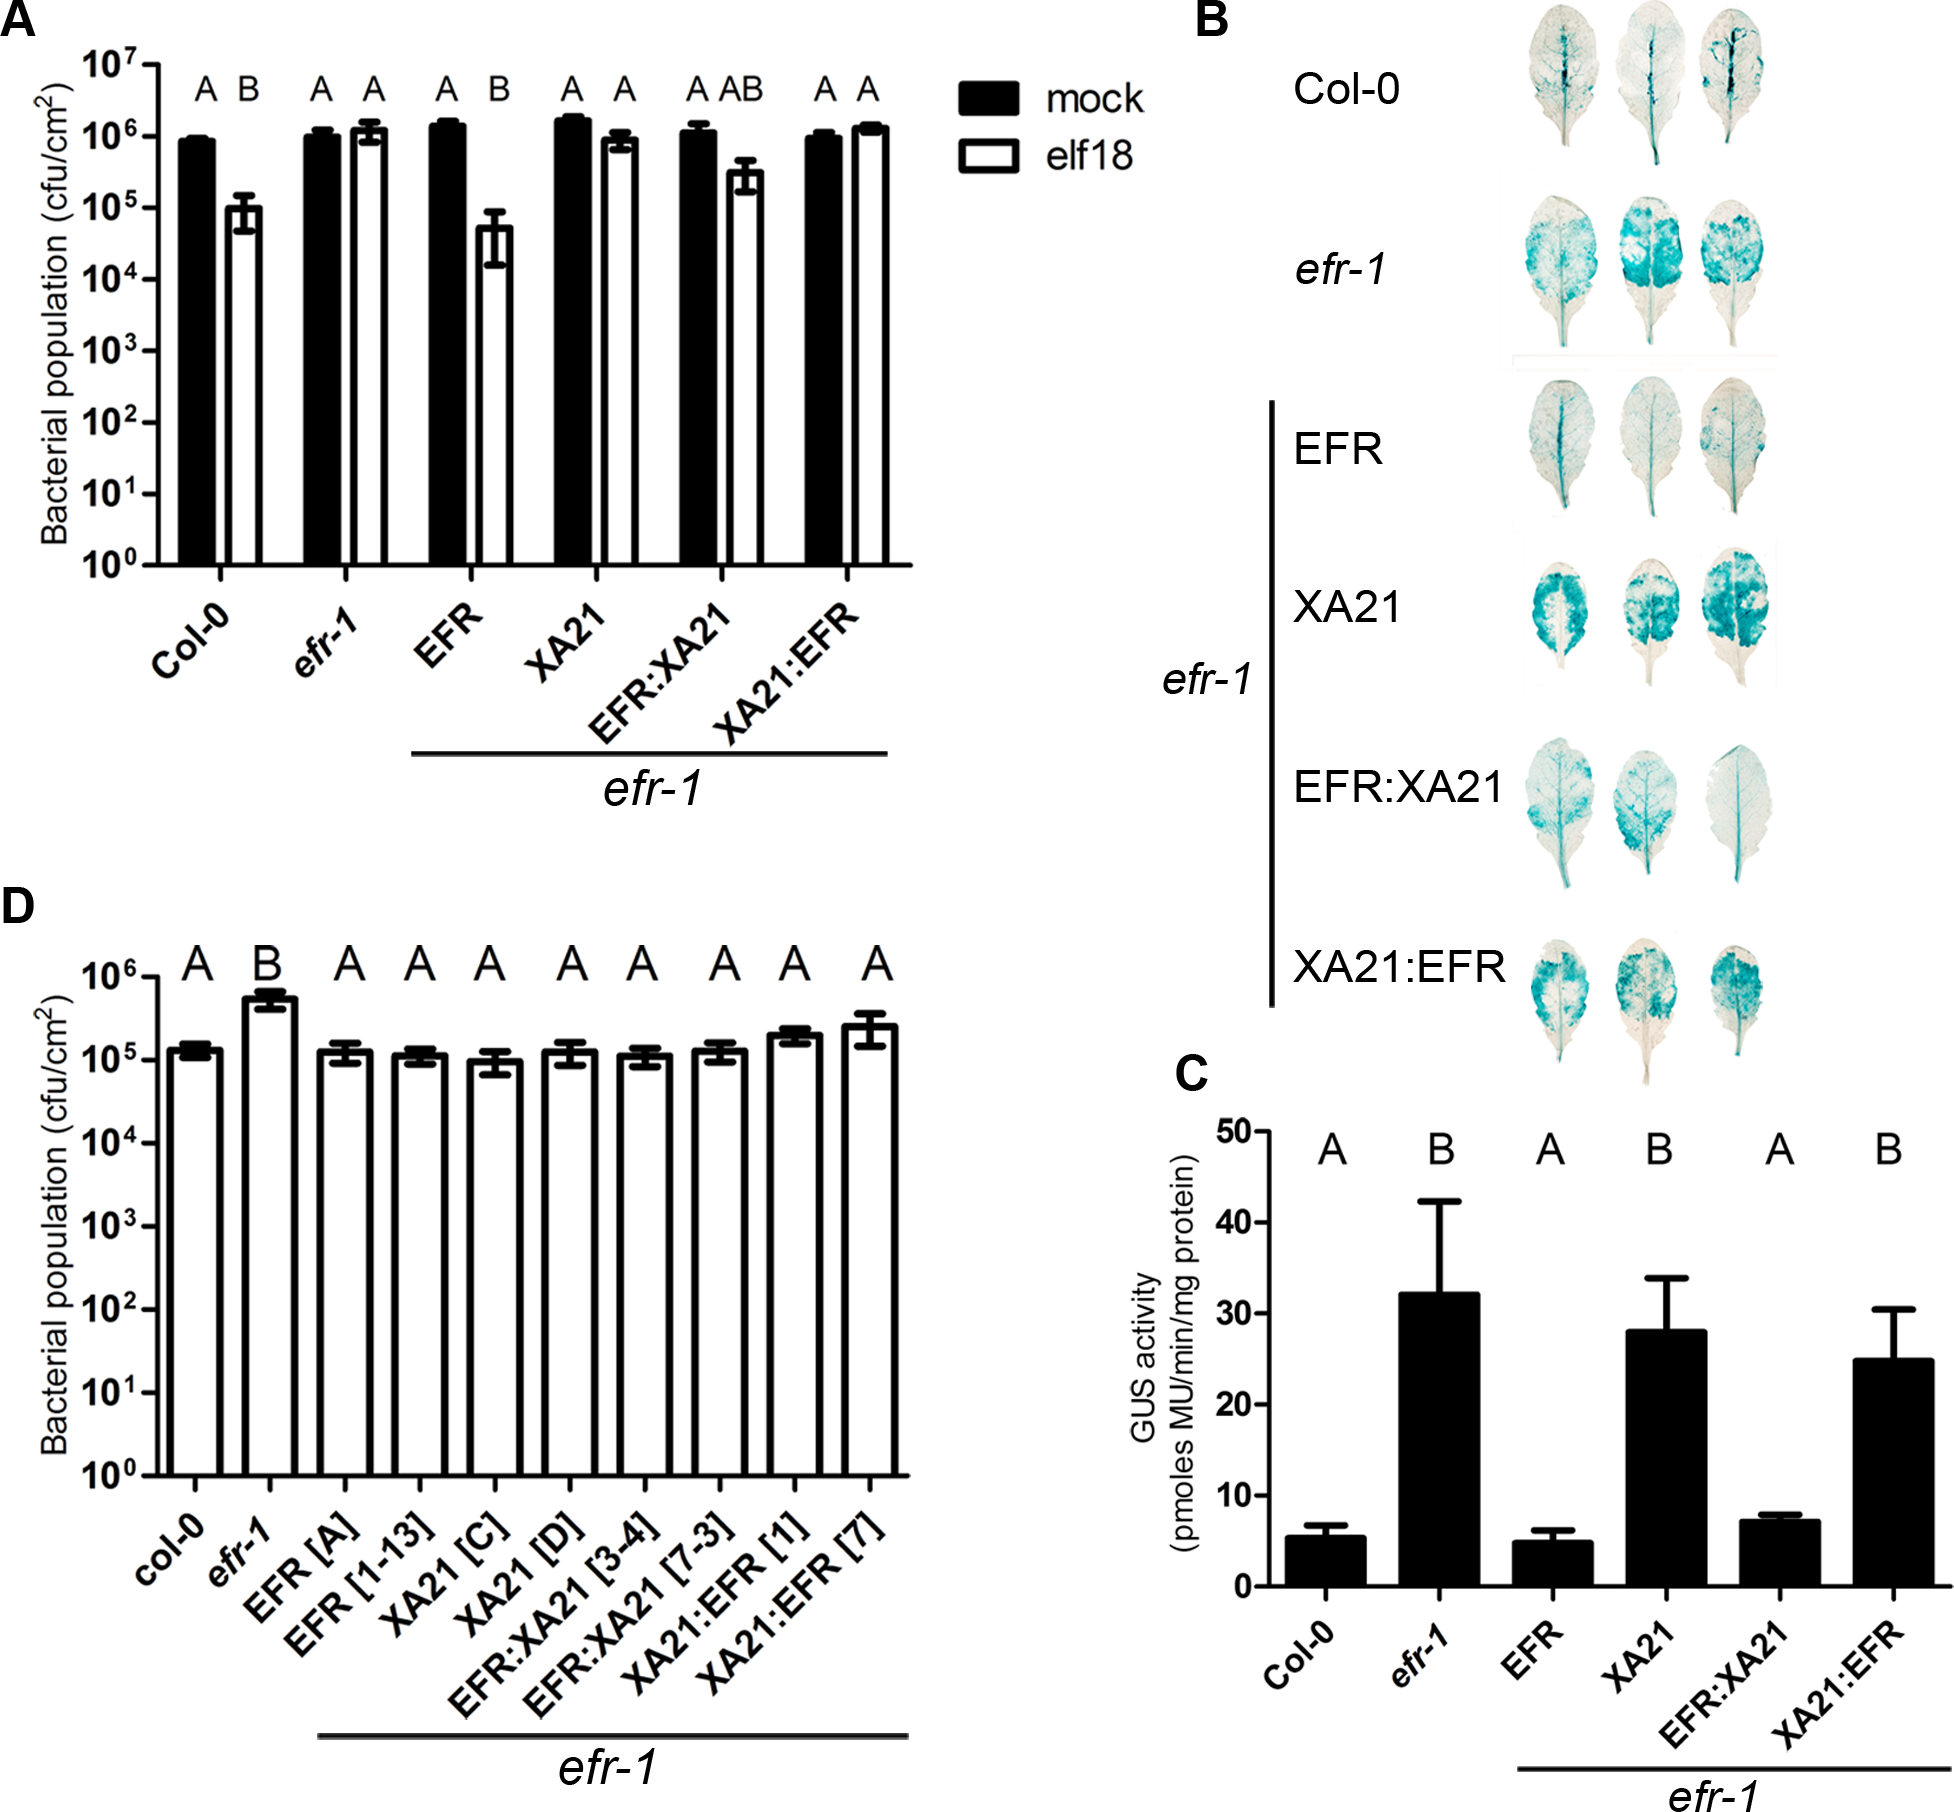 Bacterial resistance conferred by EFR, XA21 and chimeric receptors in <i>A. thaliana</i>.